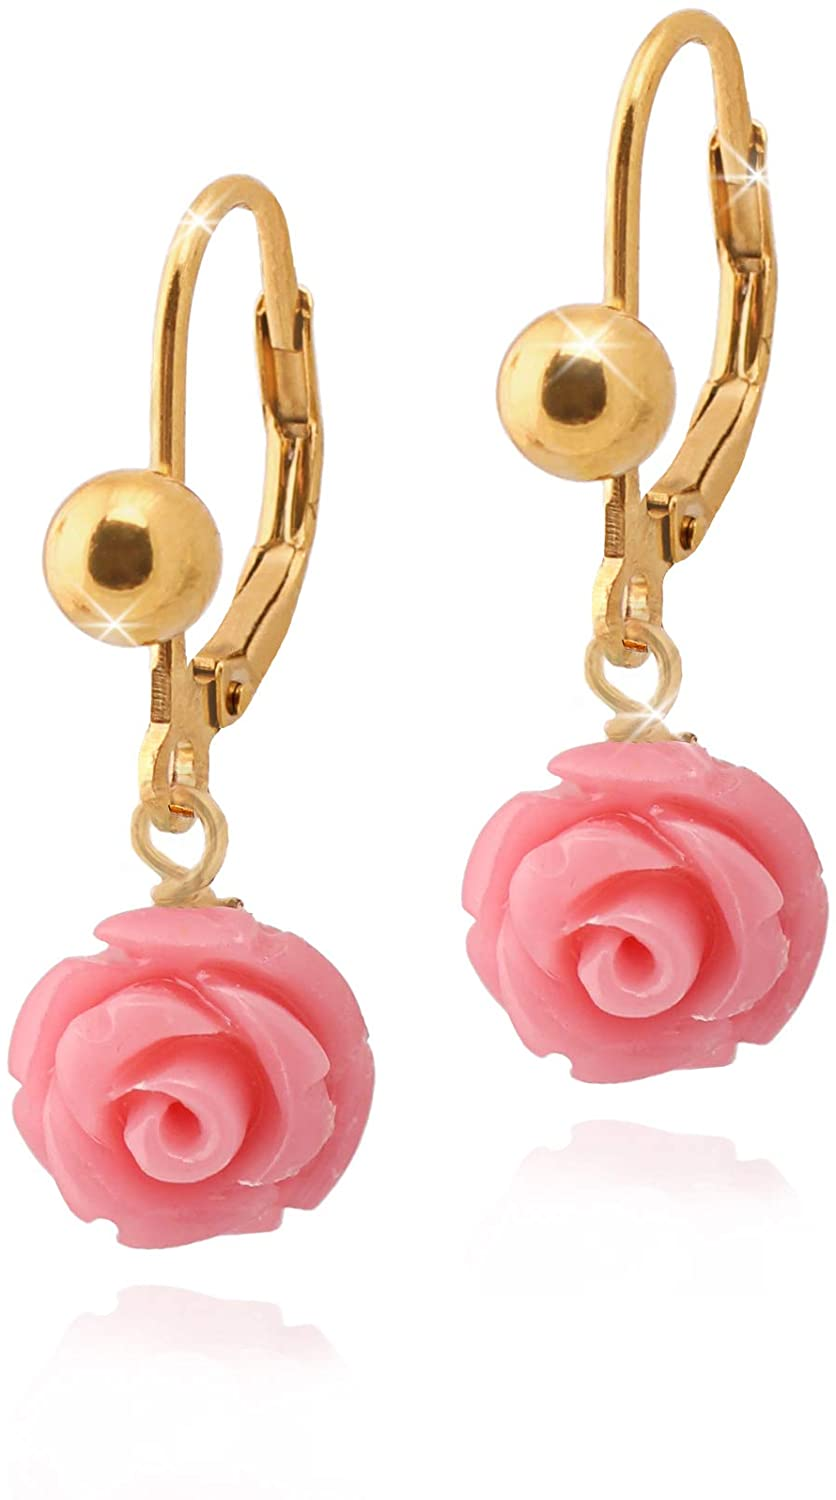 Surgical Steel Earrings for Girls: Toddler Earrings - Resin Rose Flower Earrings - Hypoallergenic Baby Earrings